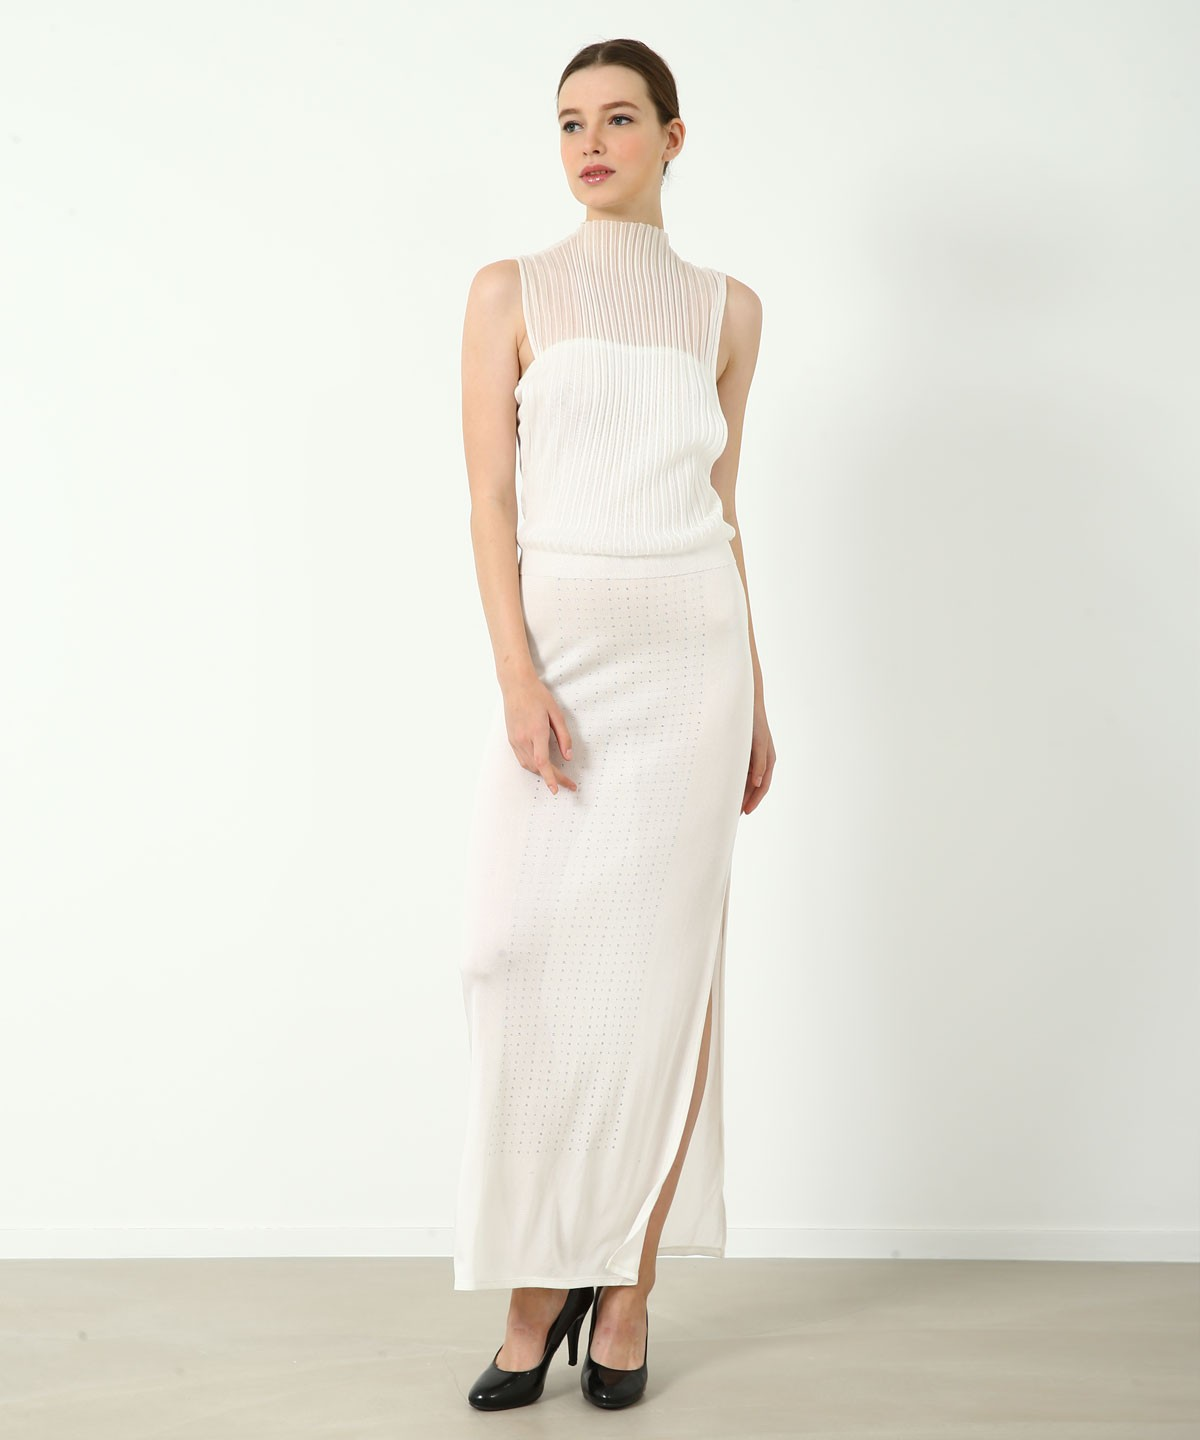 The Pure White Luxe Crystal Dress - Knitted